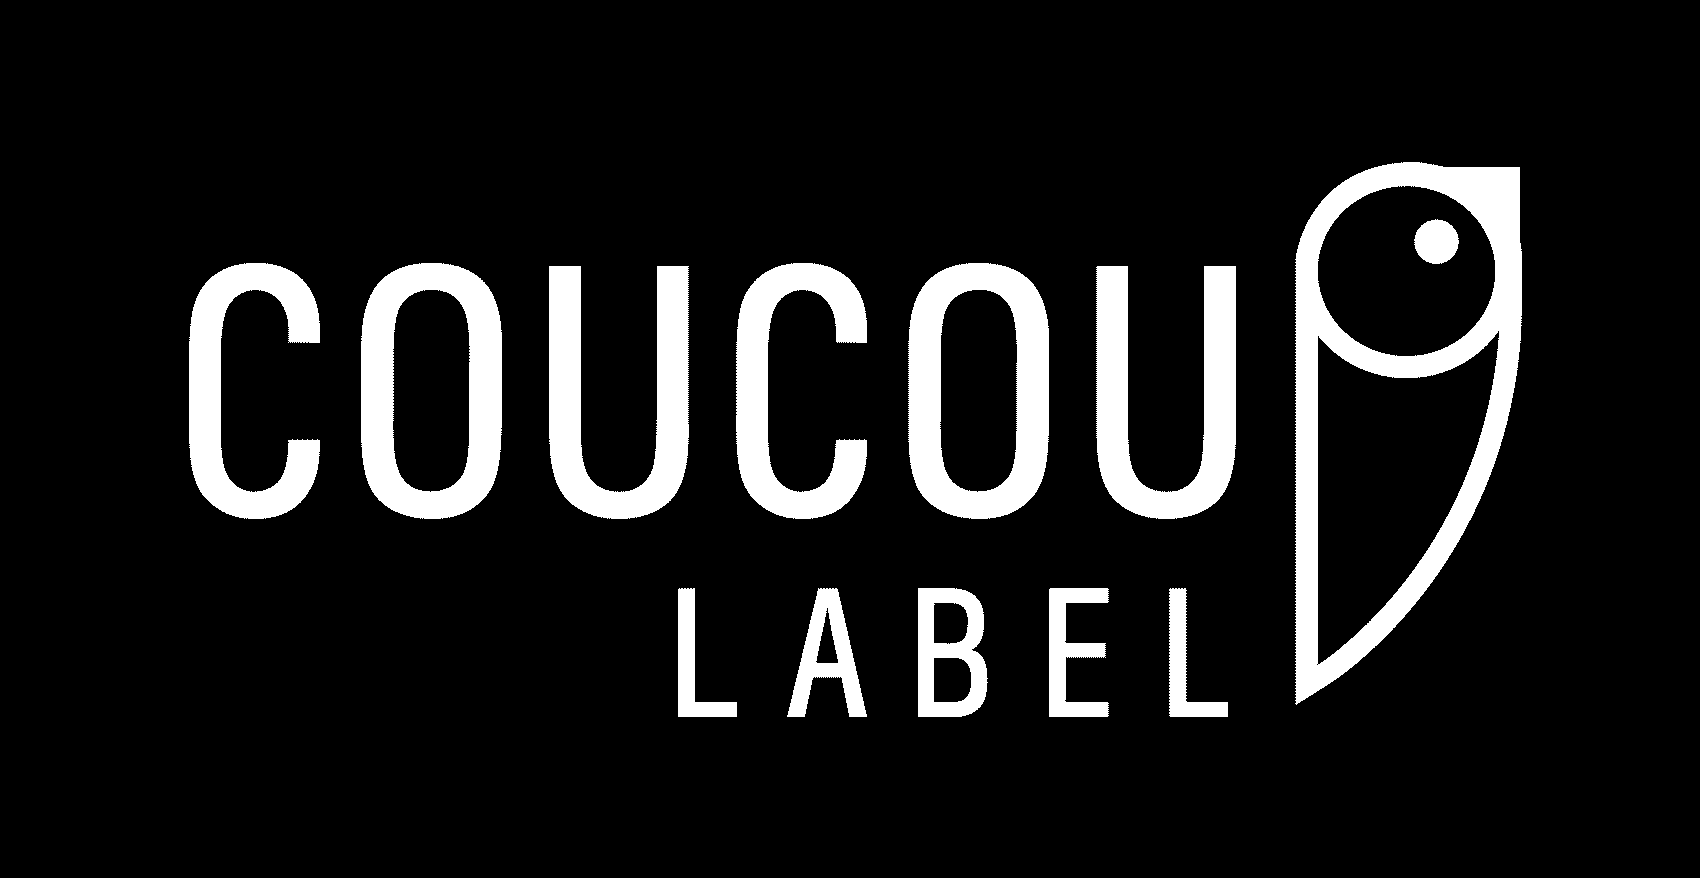 CoucouLabel